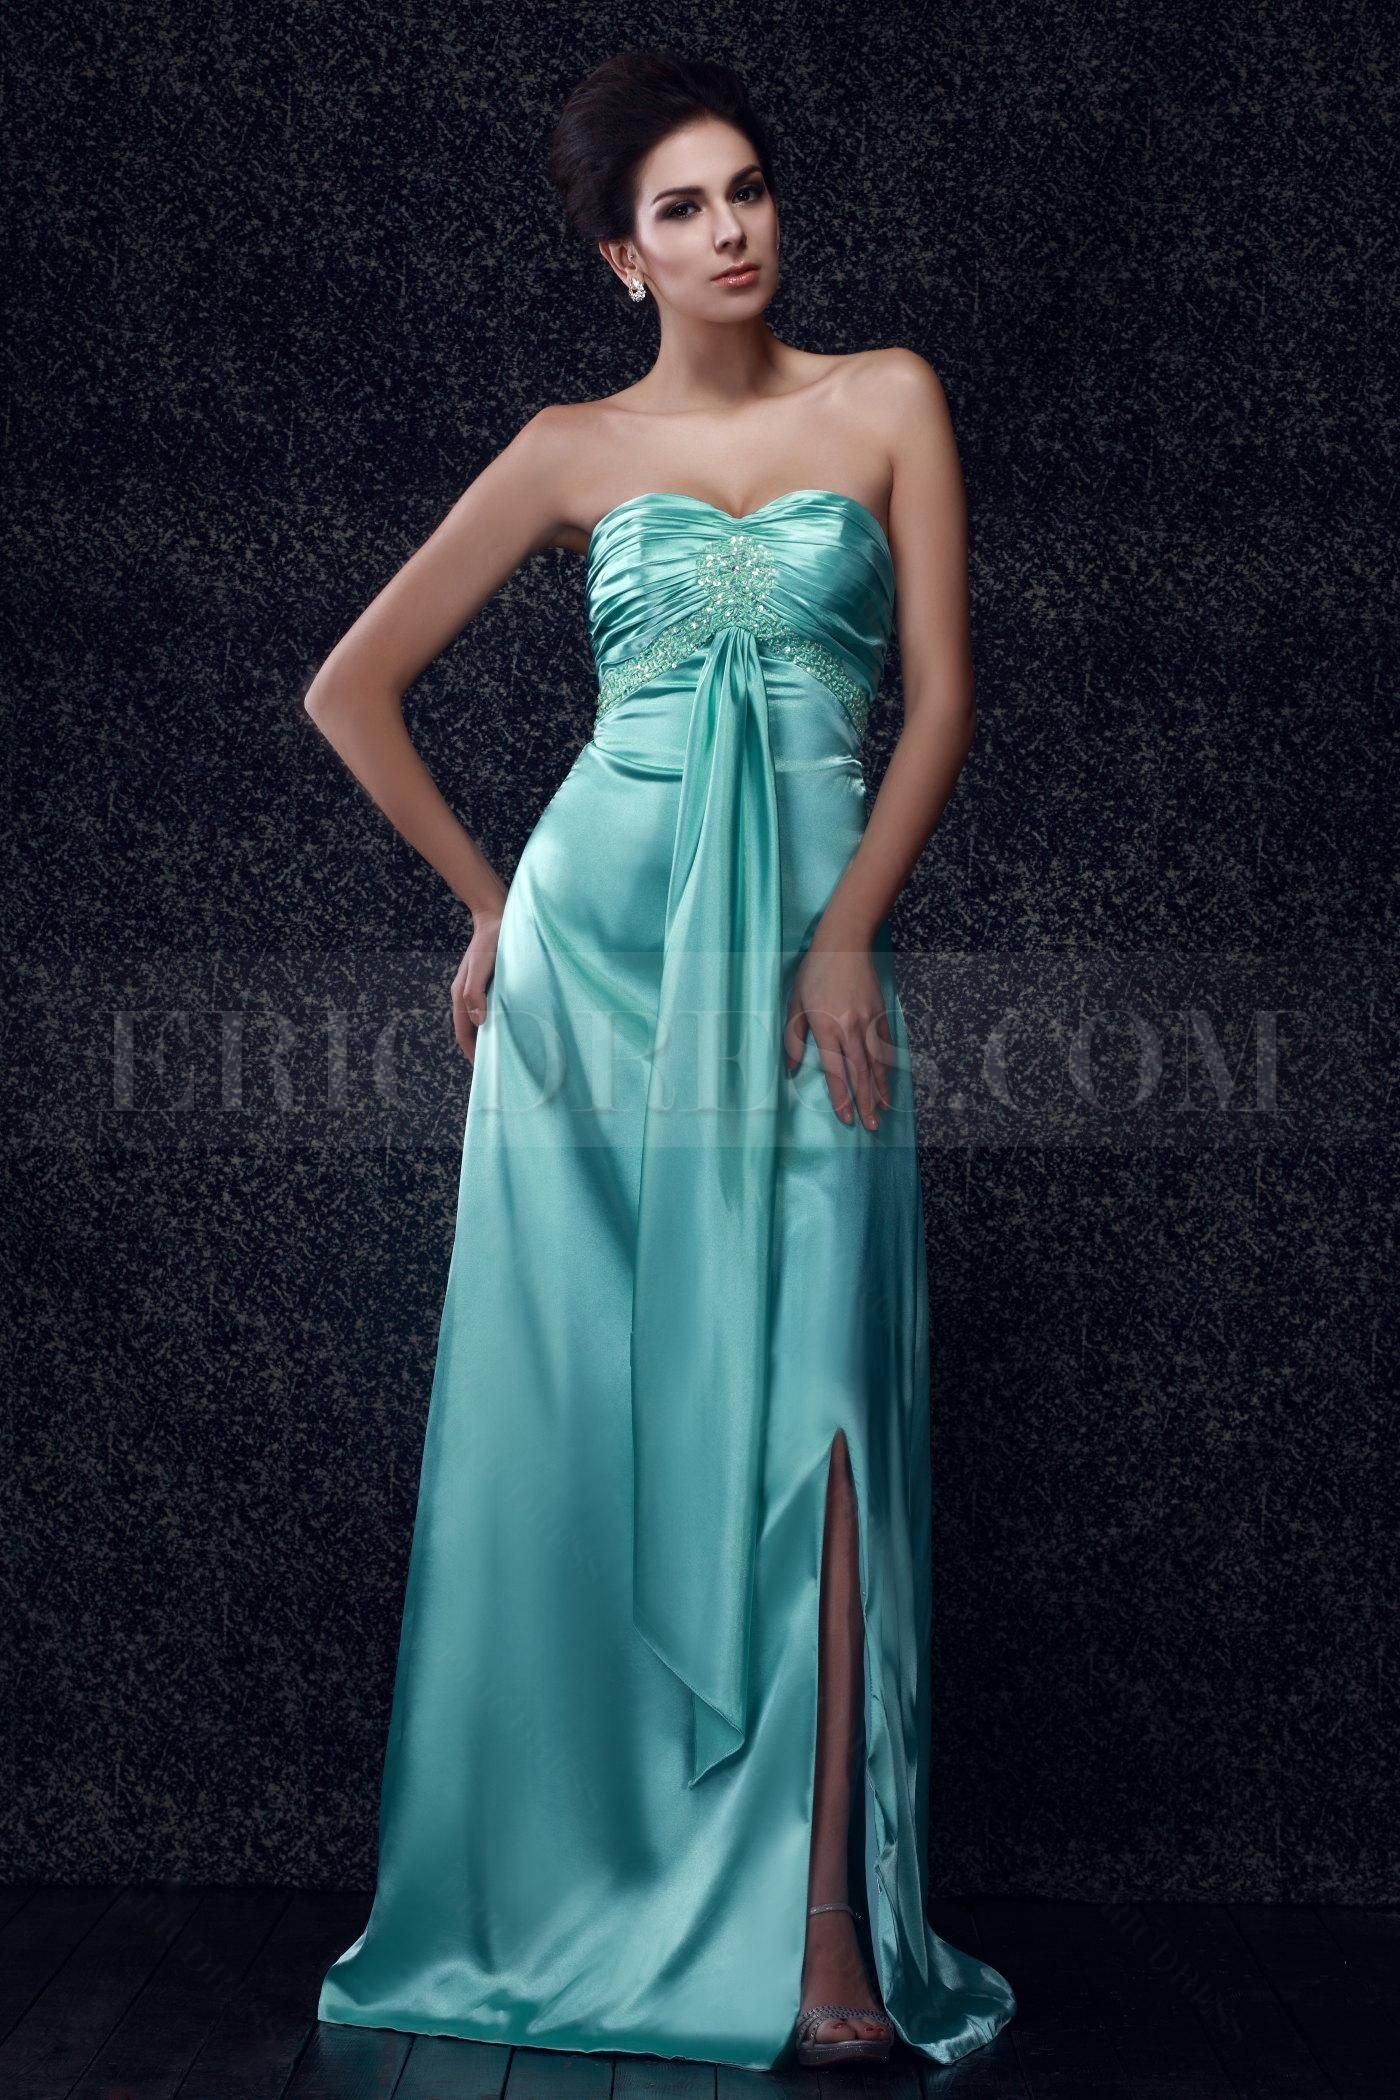 Sweetheart neckline with empire column shape and sexy slit skirt